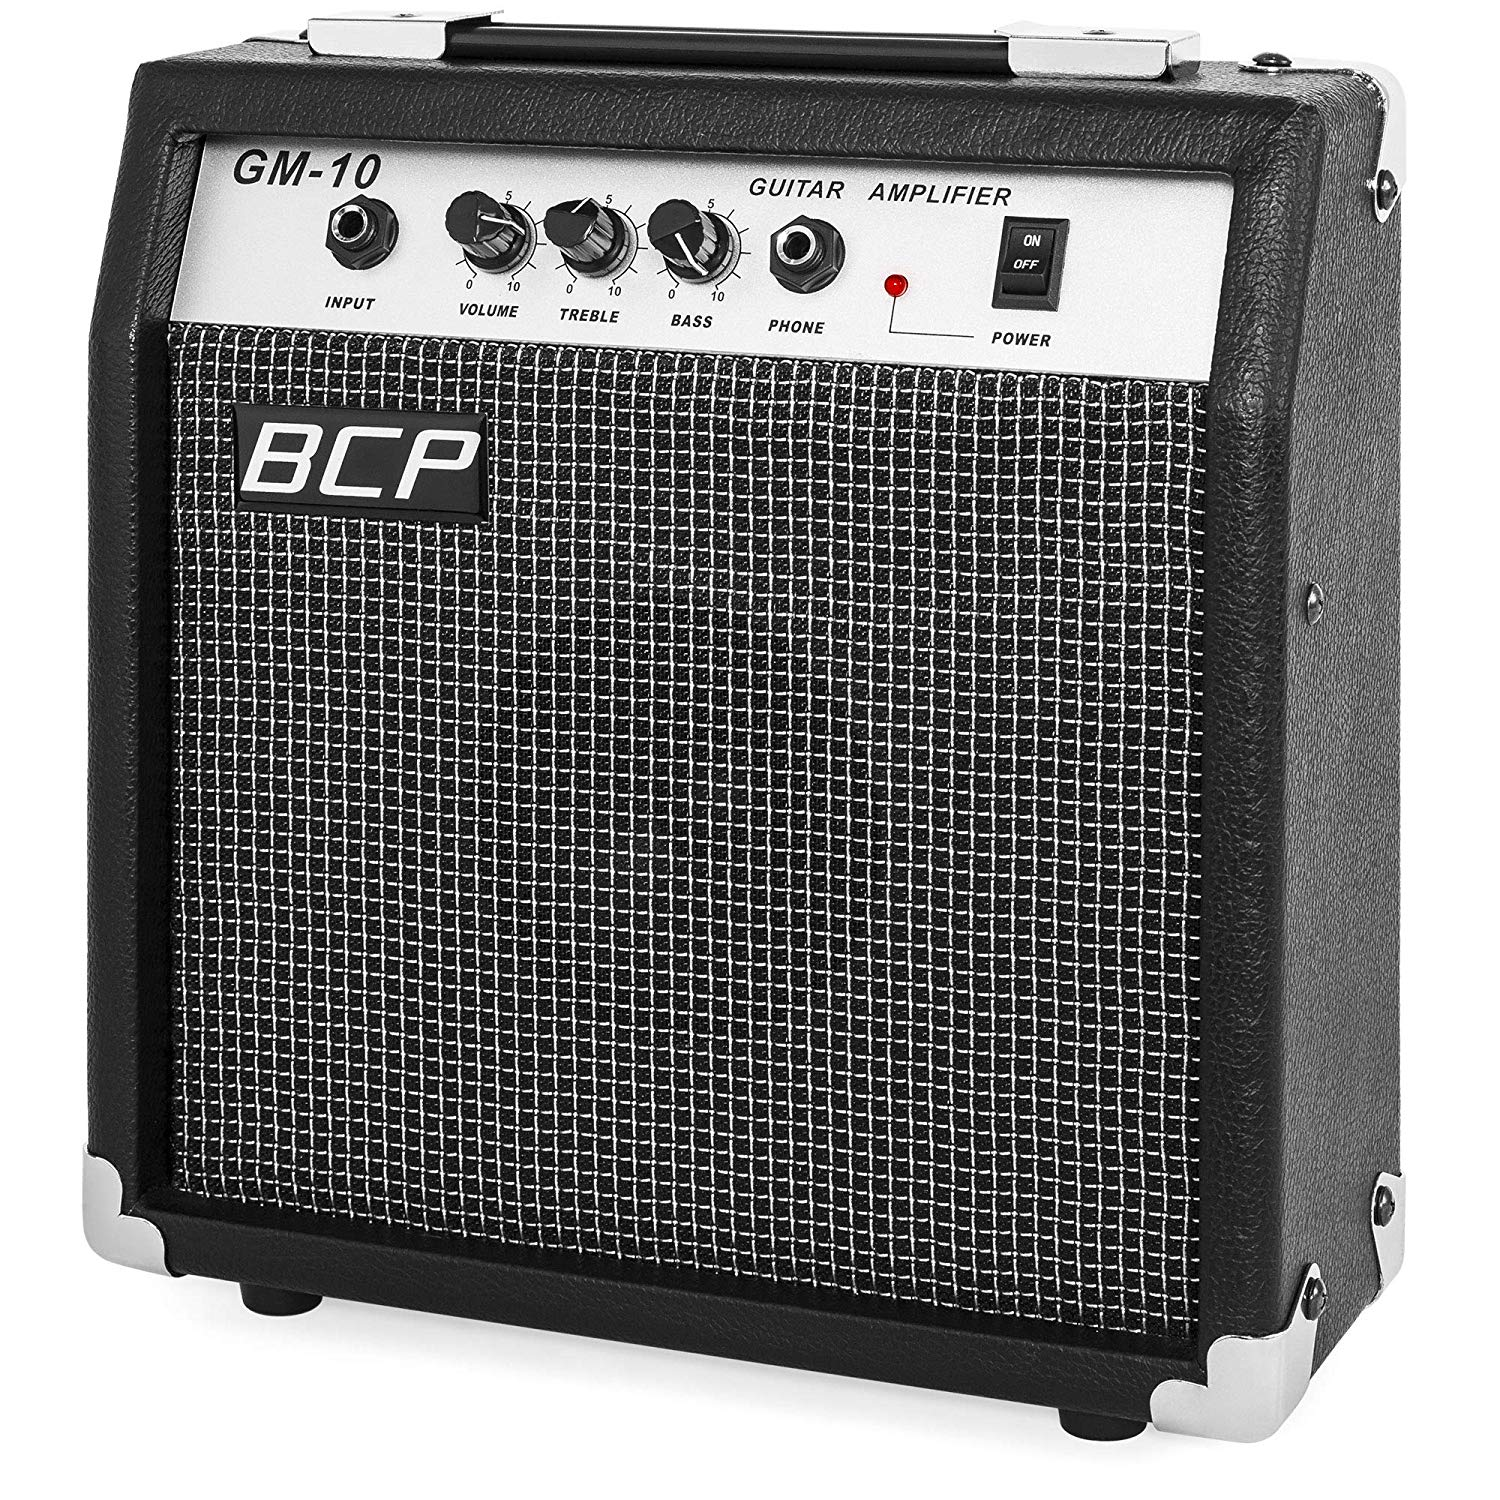 The BCP 10W Amp that comes with the Blue BC Acoustic-Electric Guitar